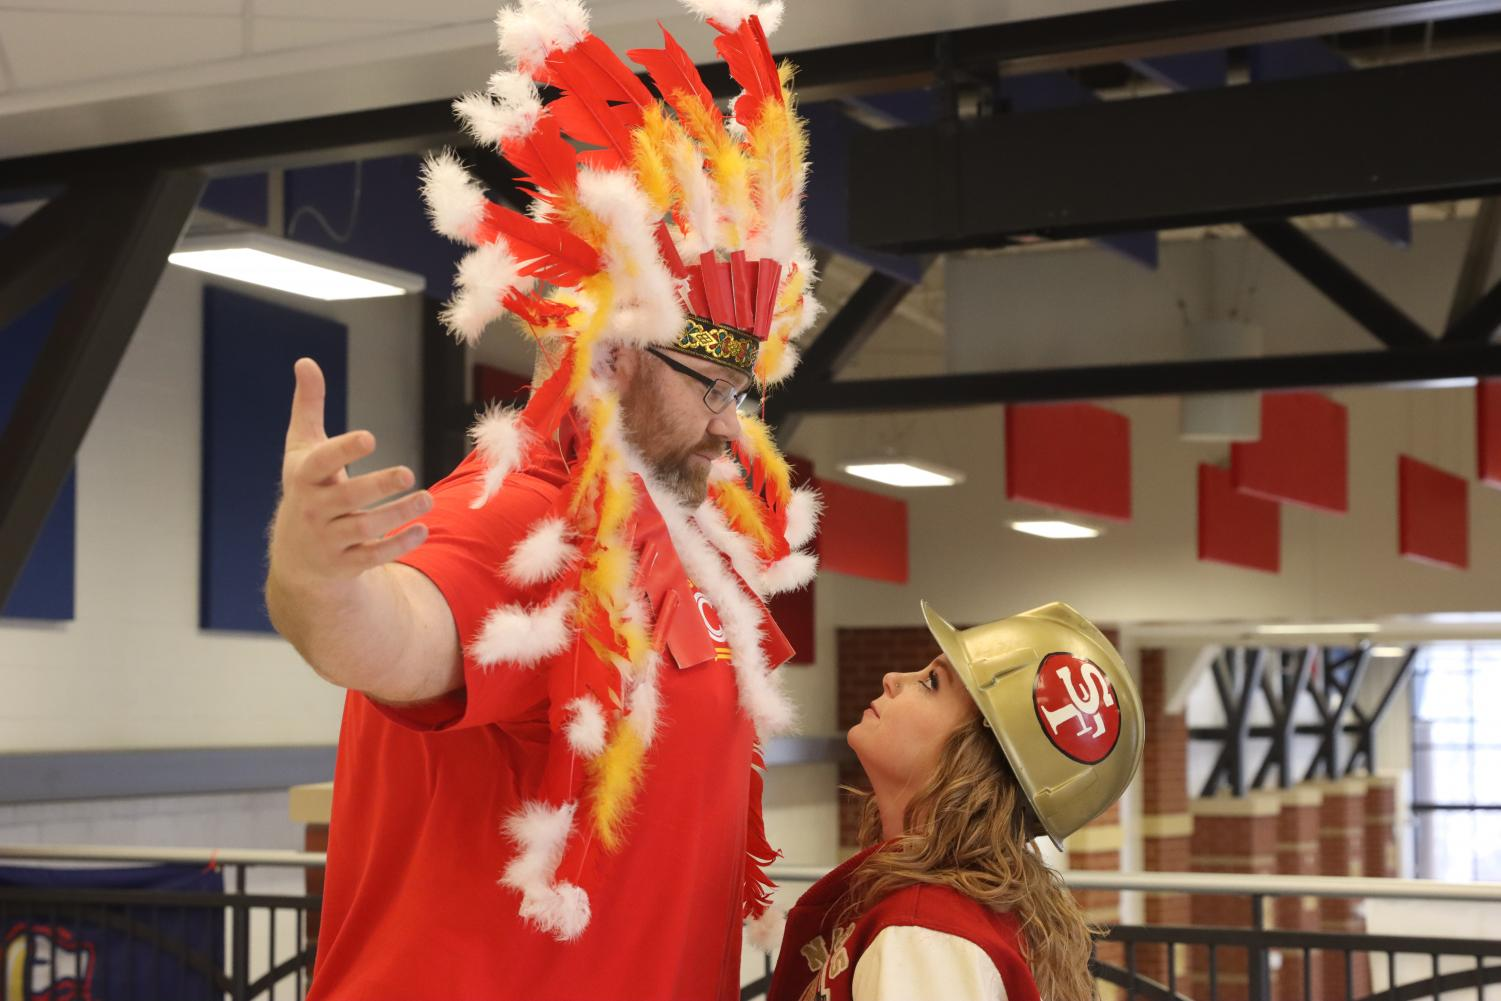 Mr. Barnes (Chiefs fan) and Ms. Beierman (49ers fan) face off against each other for Super Bowl 54.